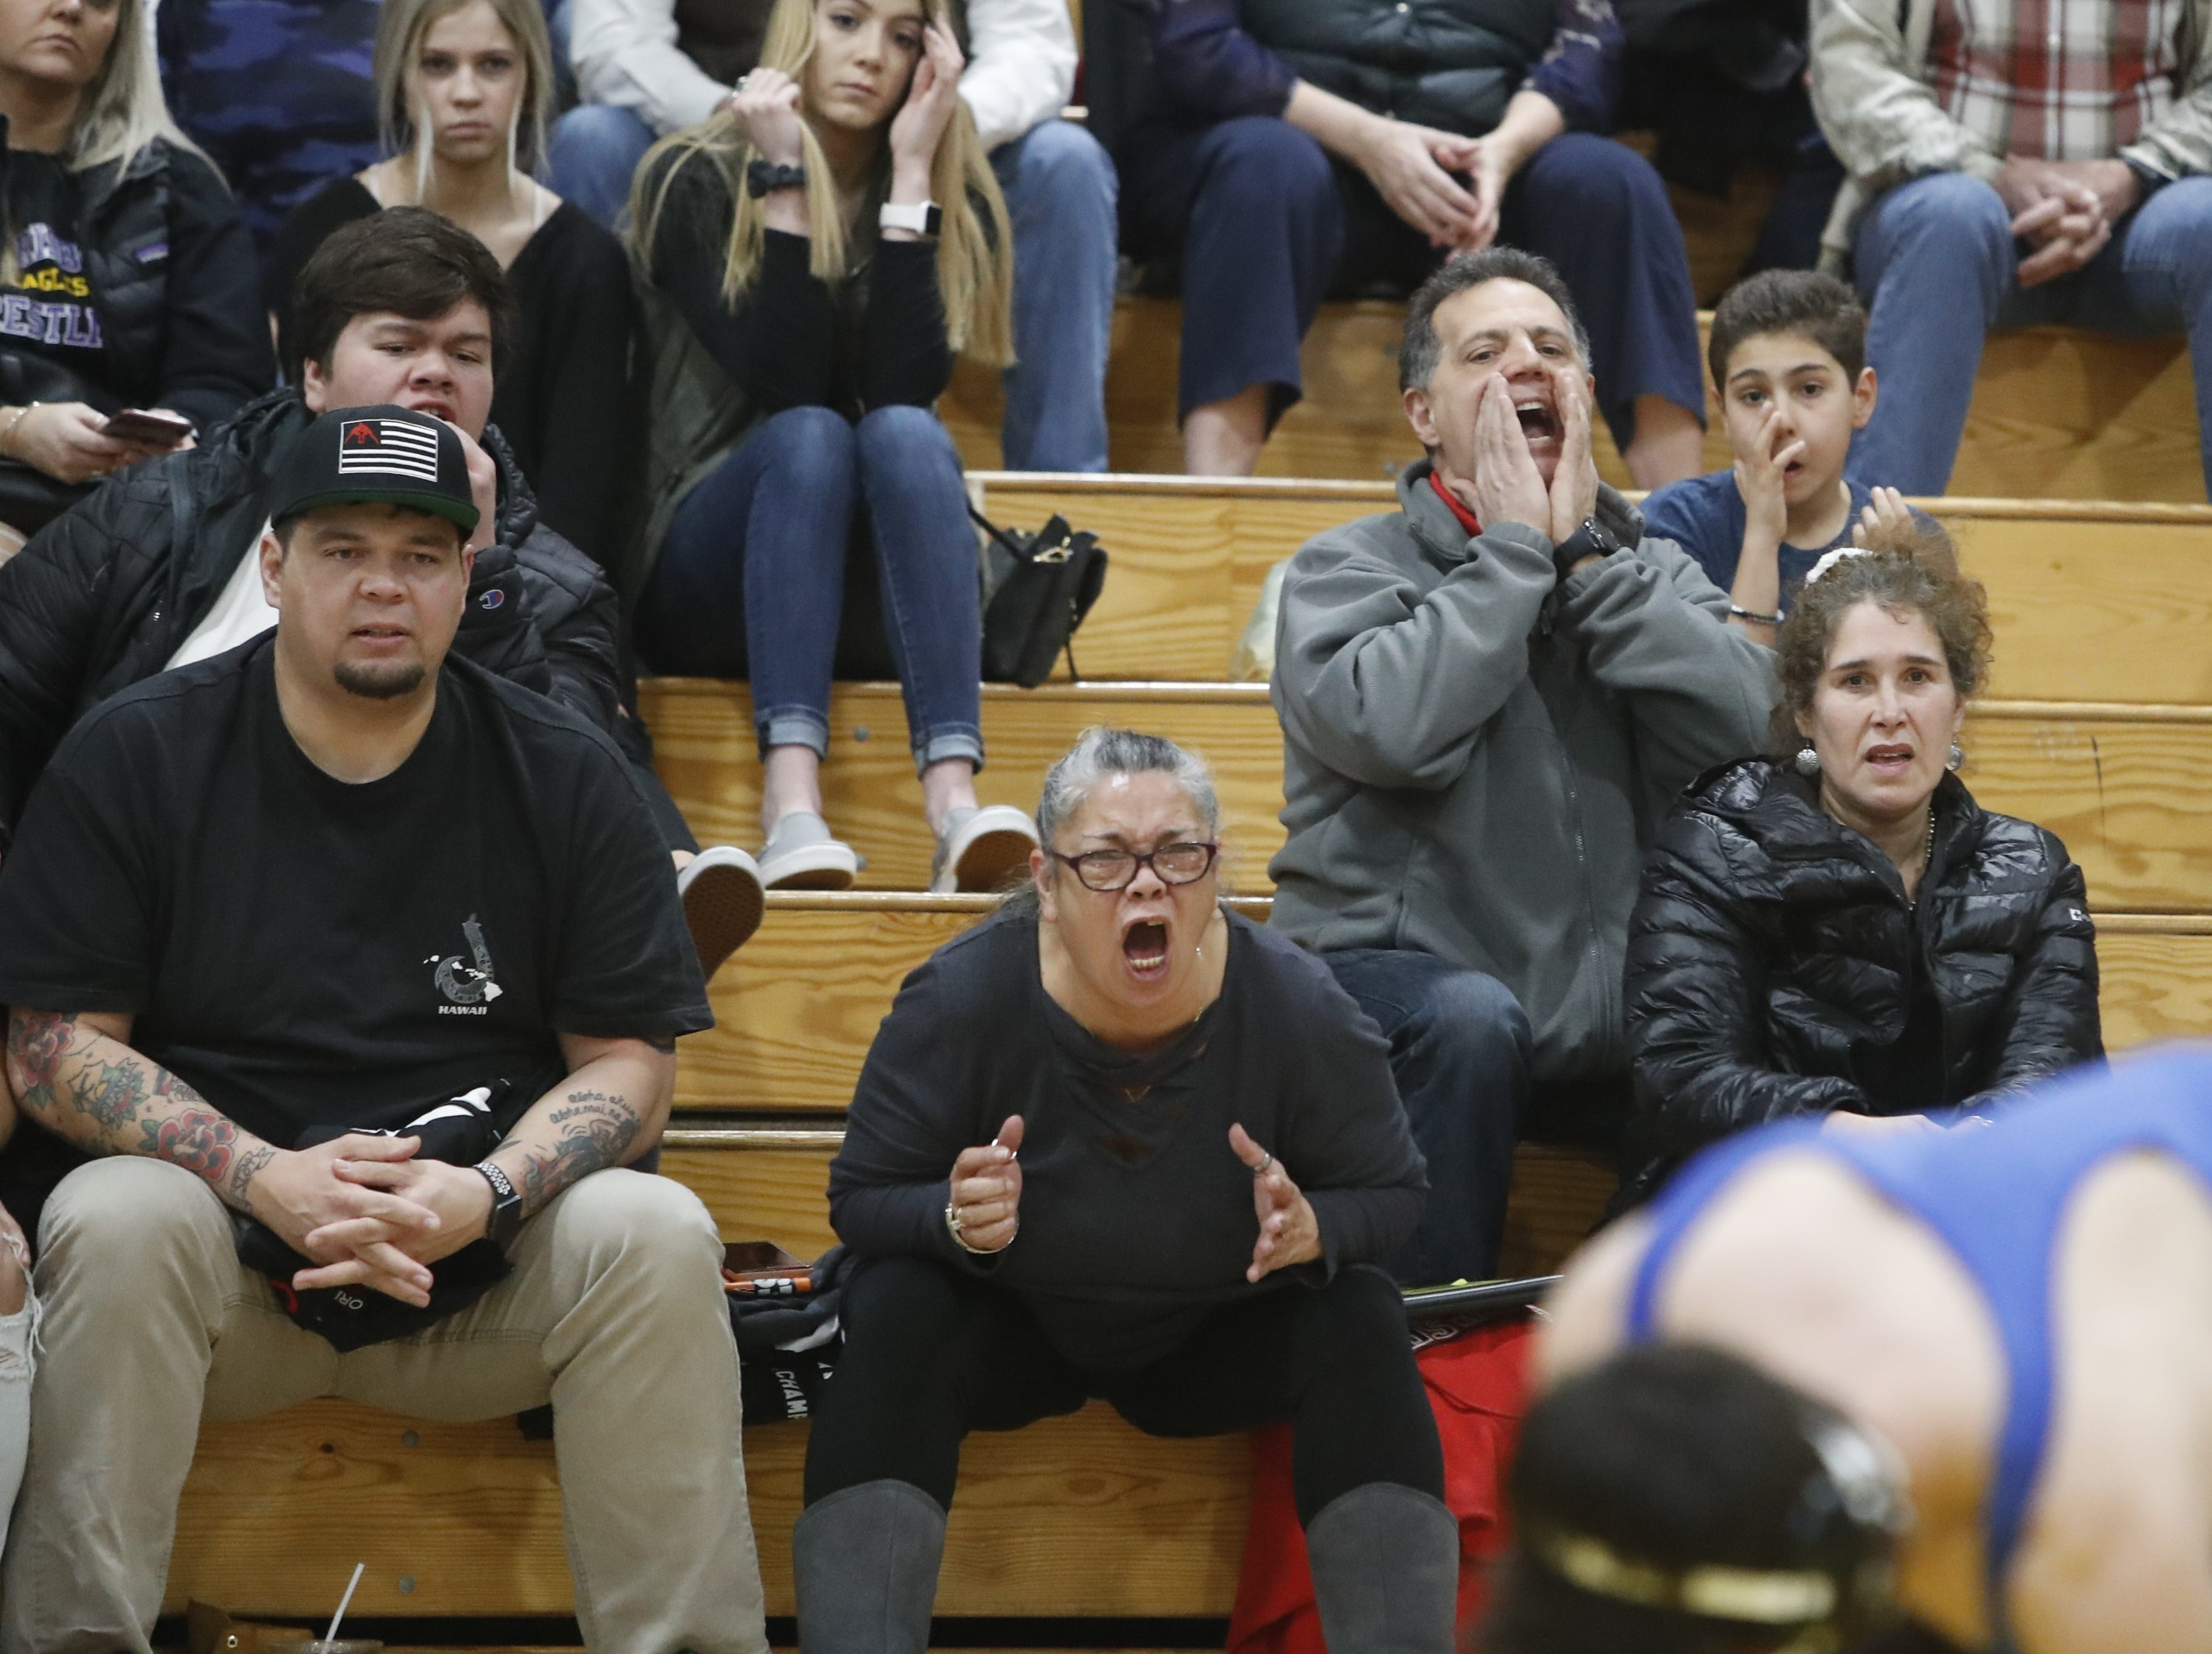 Fans watch California and Oregon wrestlers face off at the ORCA Senior All-Star Duals at Simpson University on Saturday, March 9.